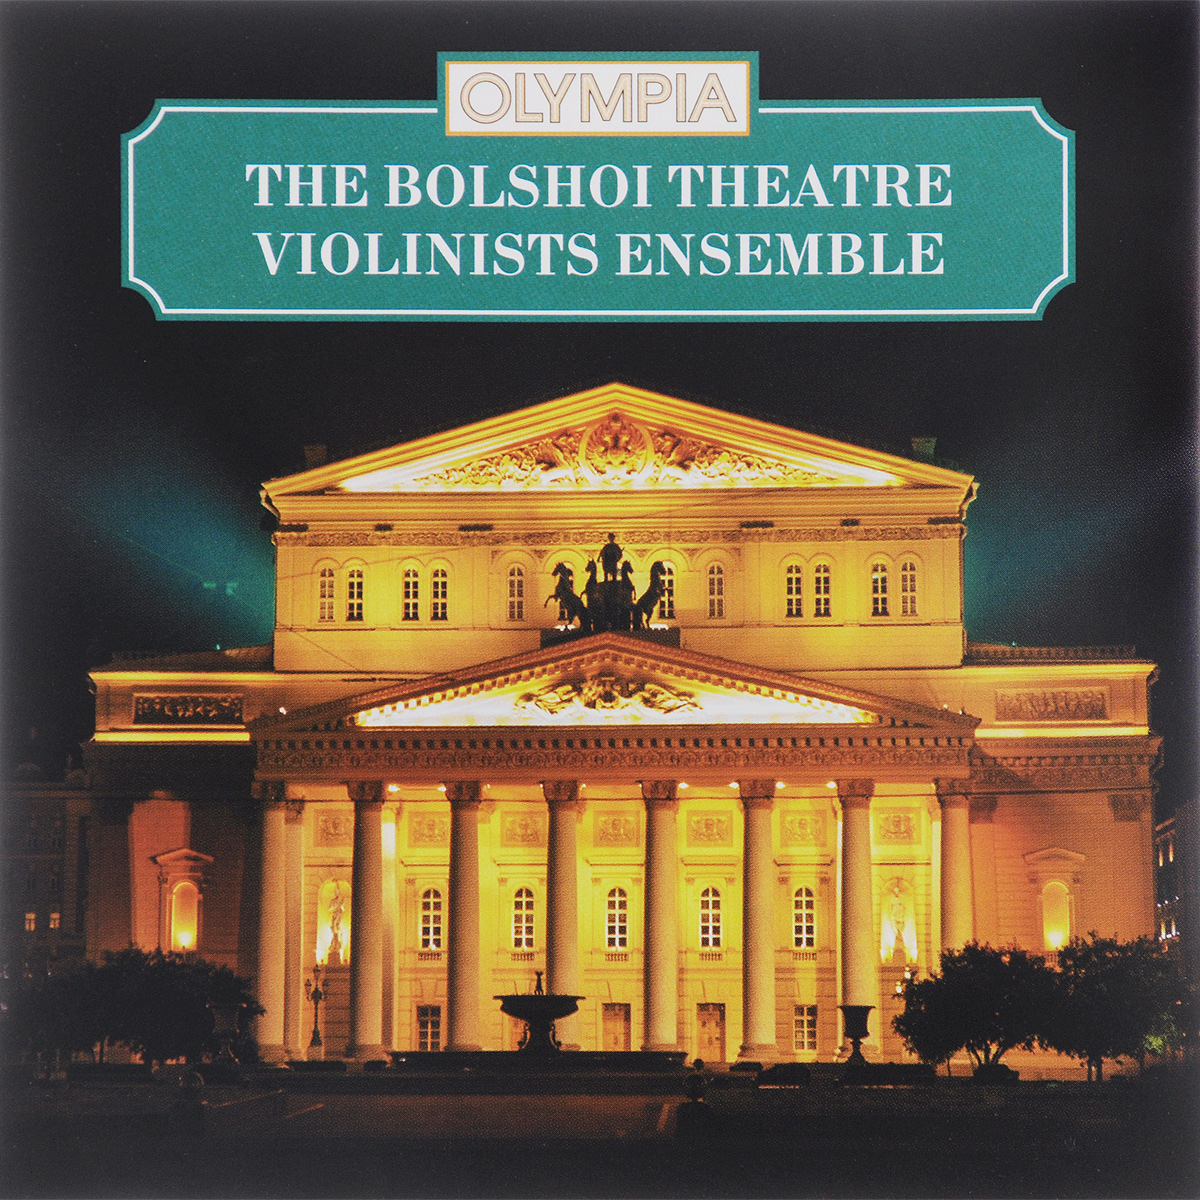 The Bolshoi Theatre Violinists Ensamble,Ирина Зайцева The Bolshoi Theatre Violinists Ensemble цены онлайн